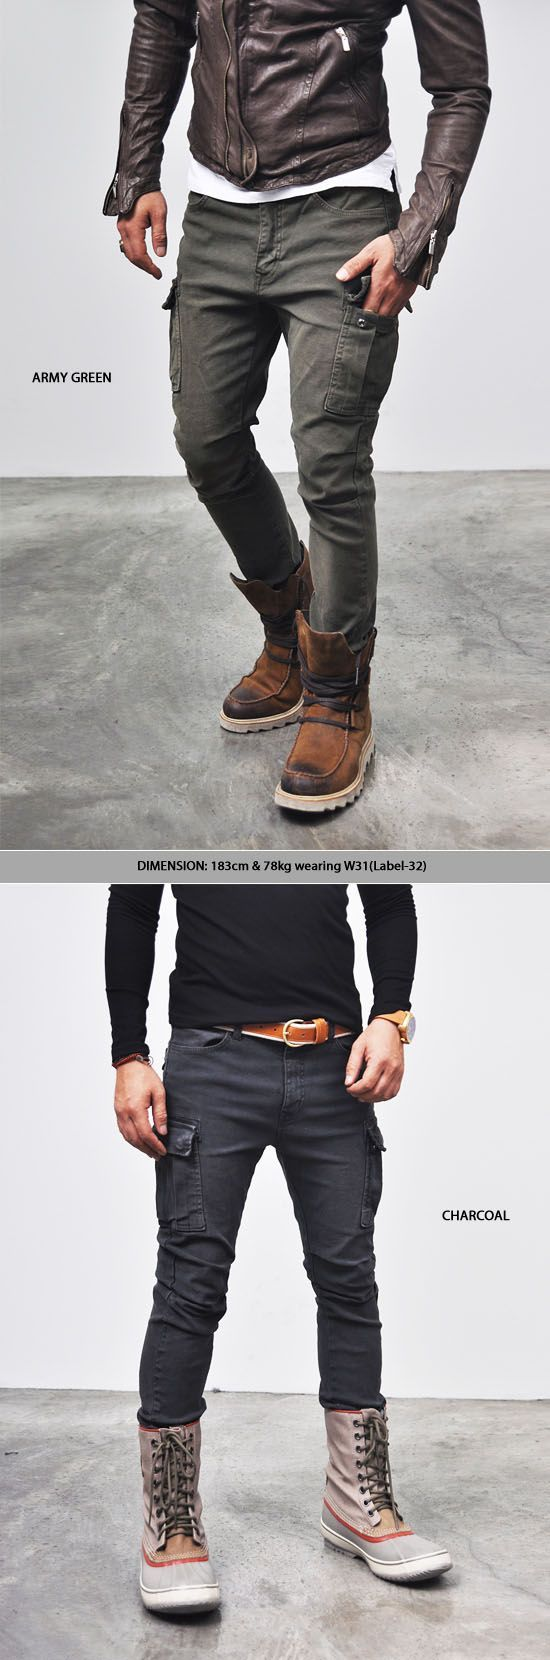 Bottoms :: Pants :: Vintage Oil Washed Slim Pocket Cargo-Pants 47 - Mens Fashion Clothing For An Attractive Guy Look   Raddest Men's Fashion Looks On The Internet: http://www.raddestlooks.org